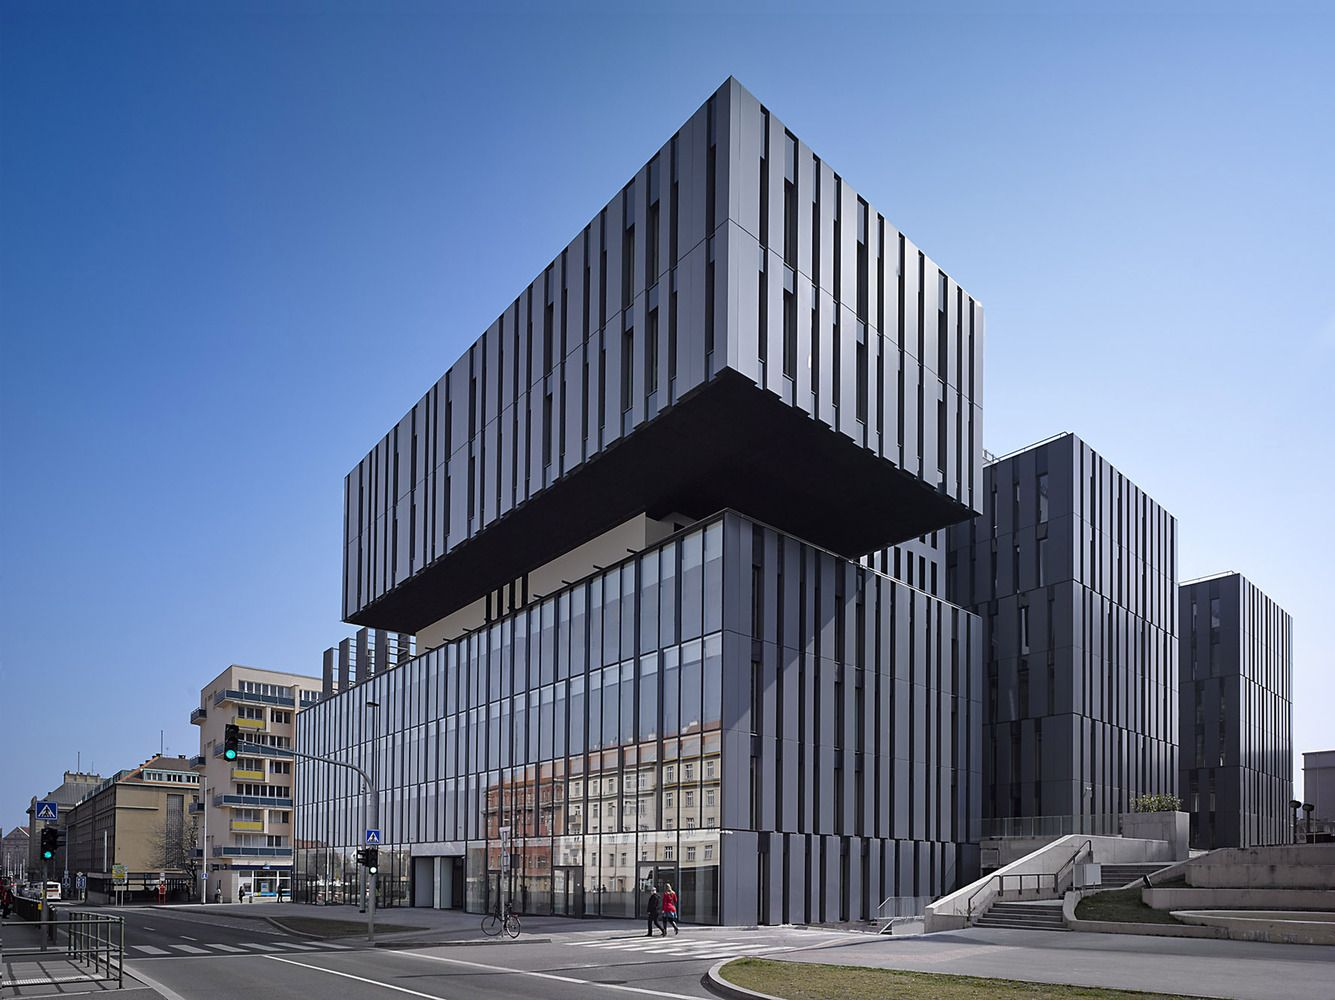 Gallery of the blox 1 architecture Building facade pictures